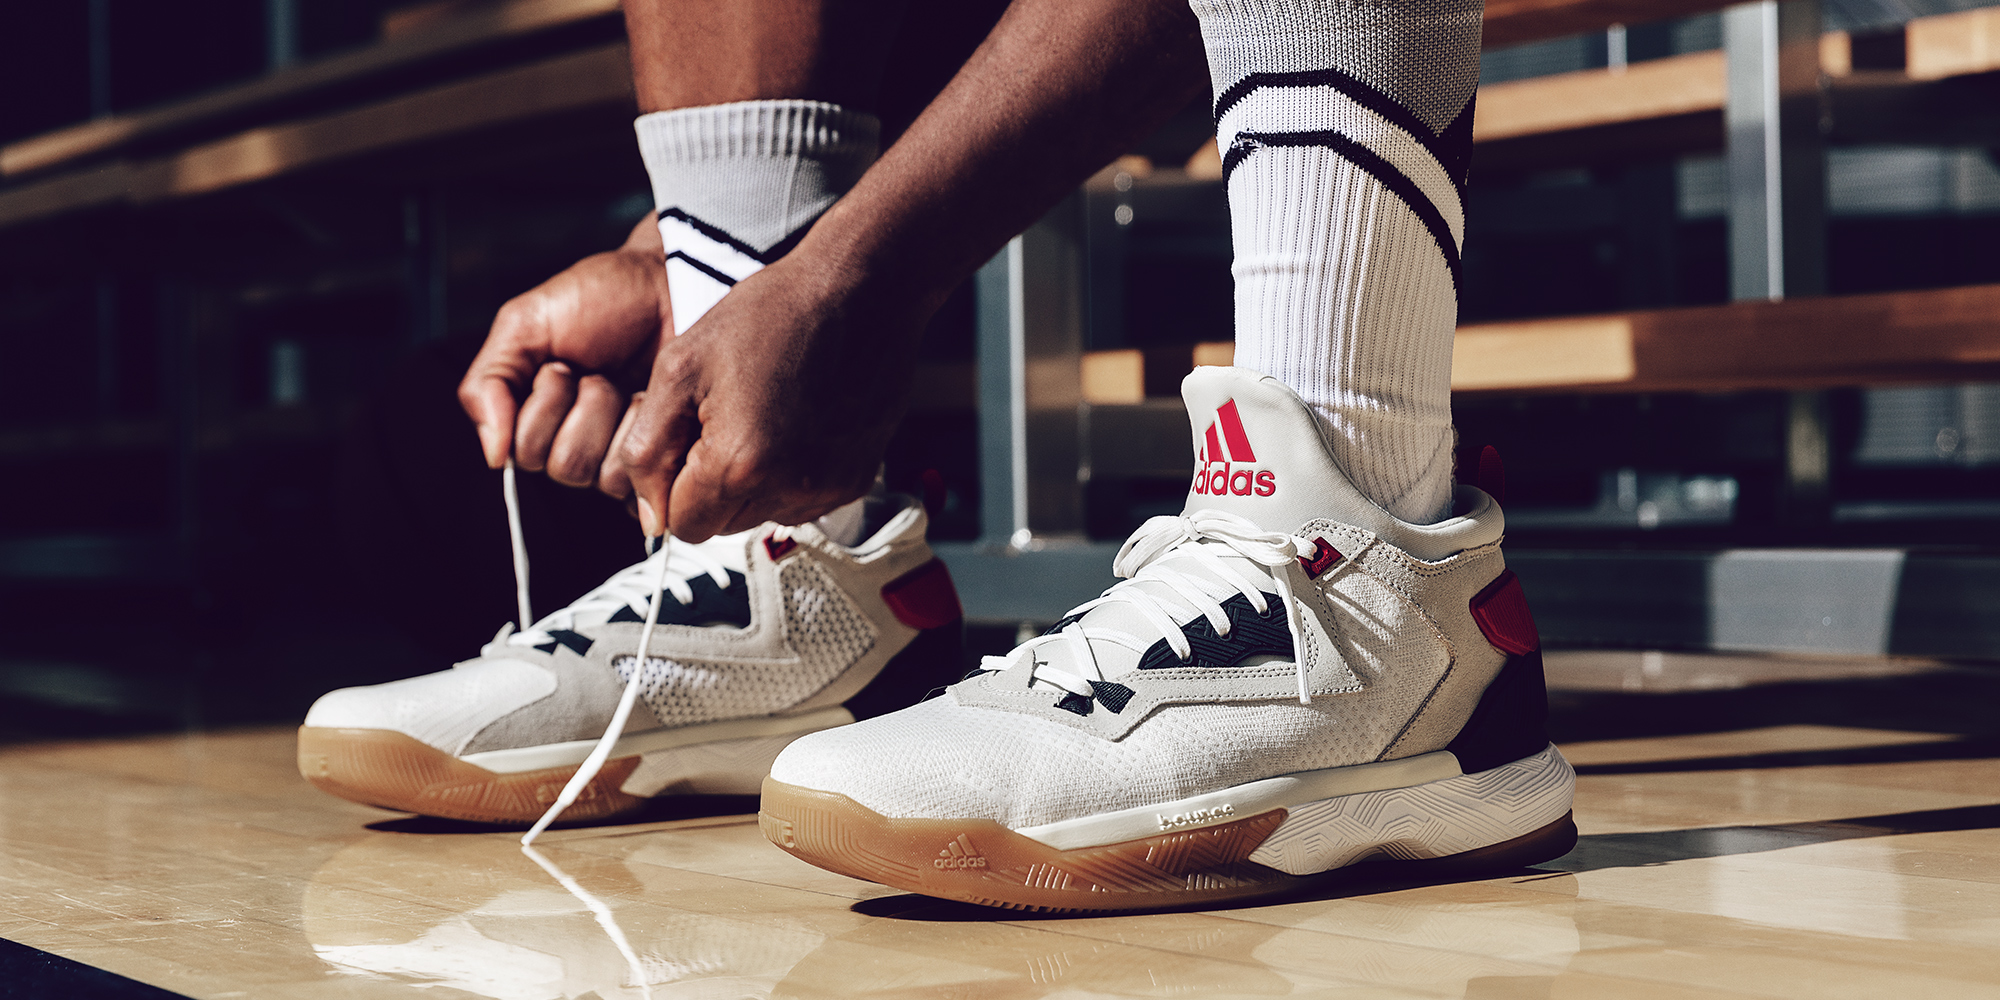 The adidas D Lillard 2 'Rip City' Colorway is Available Now